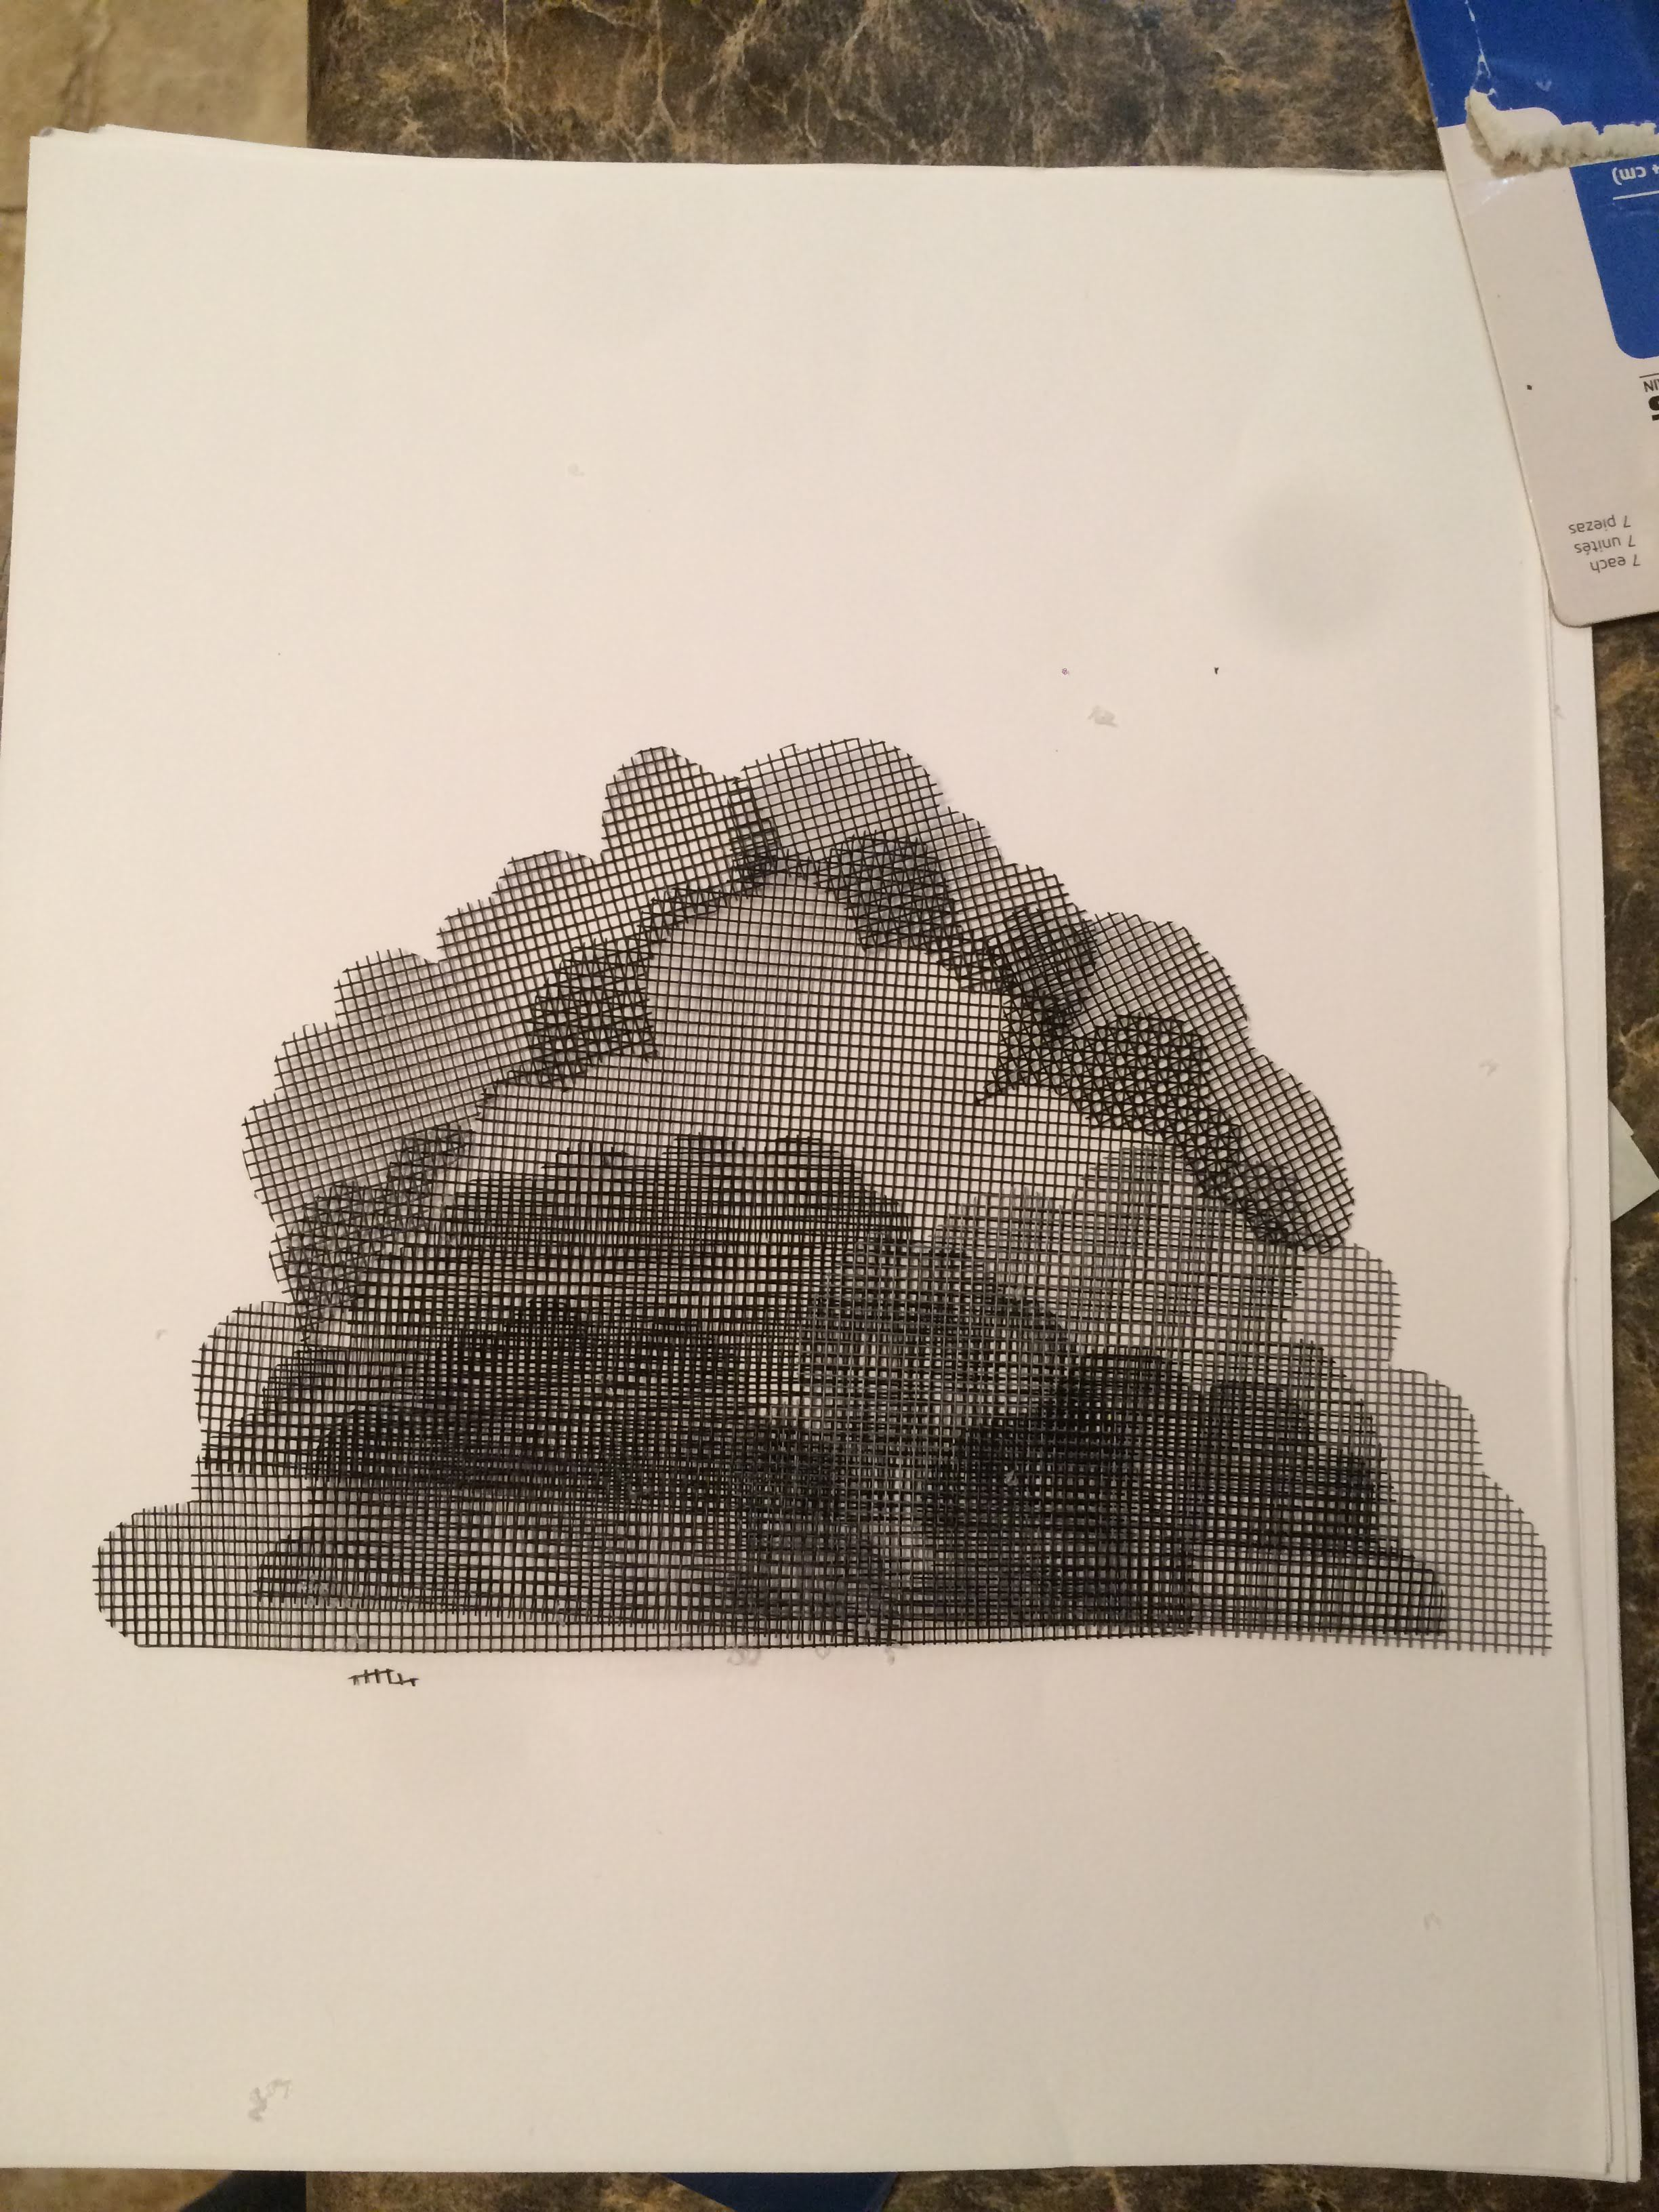 Miniature of cloud with perforated screen to test visual gradient.